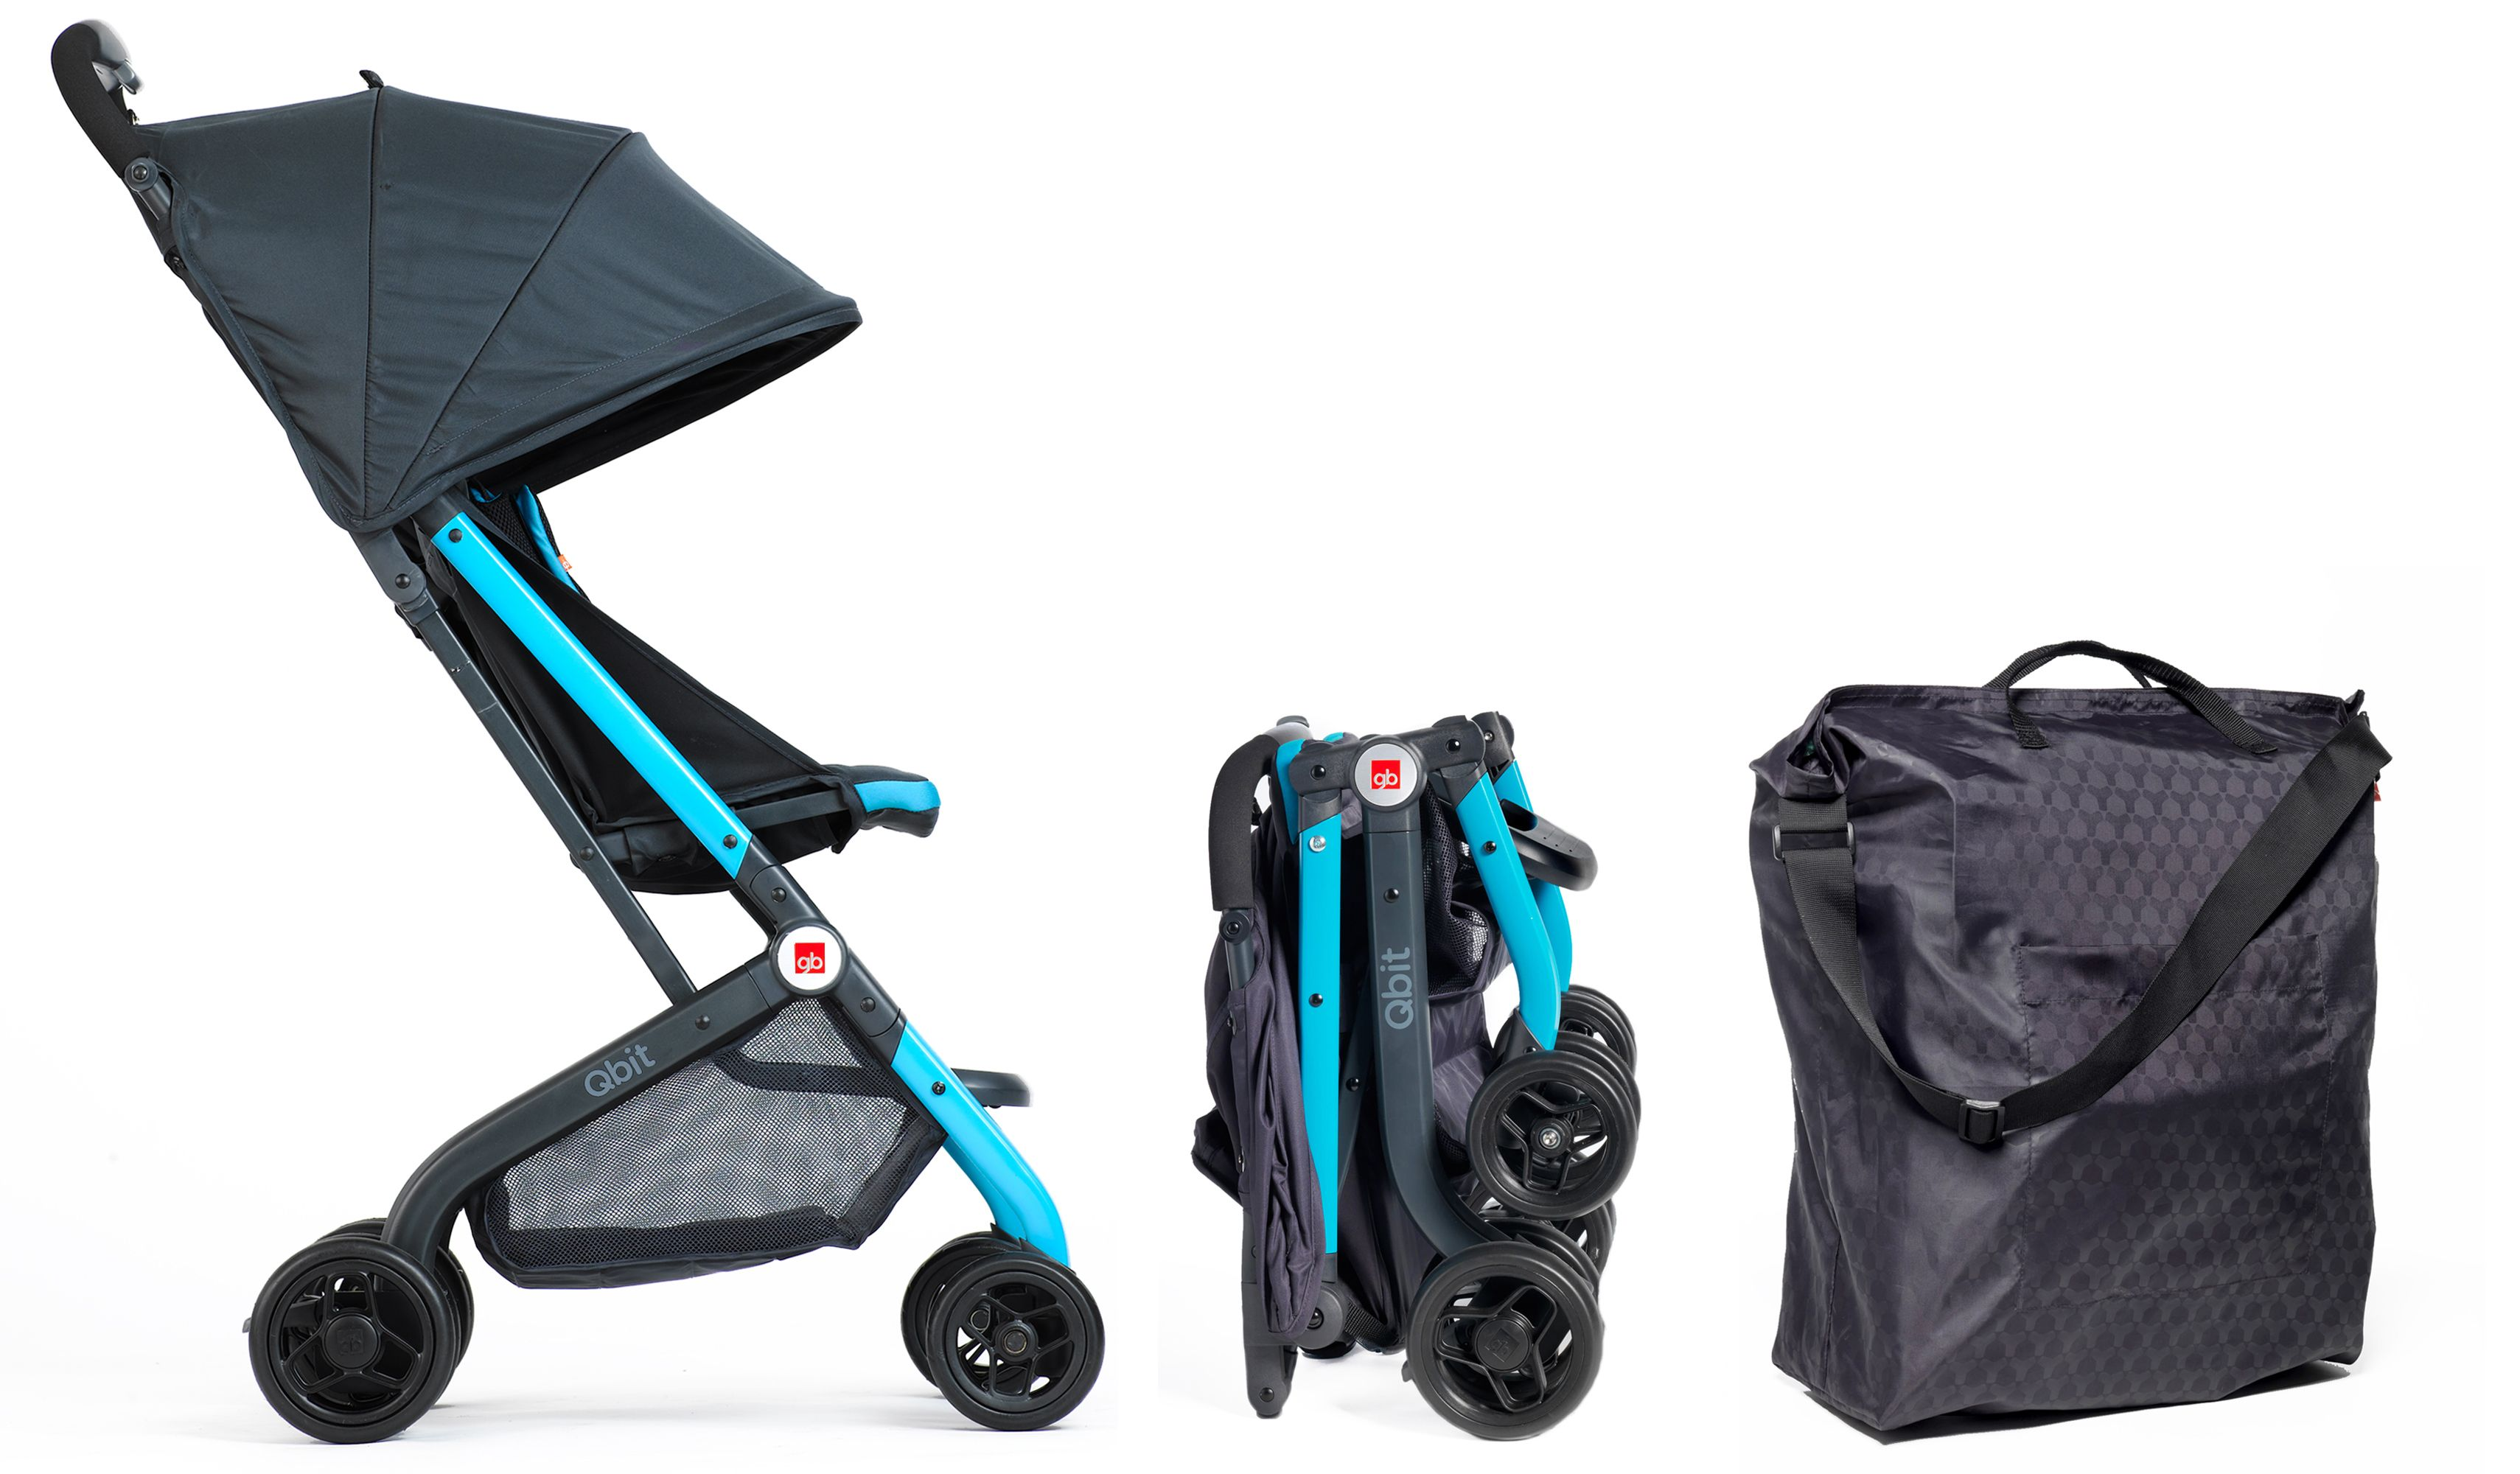 GB Qbit Travel Stroller. Includes carry bag making it easy